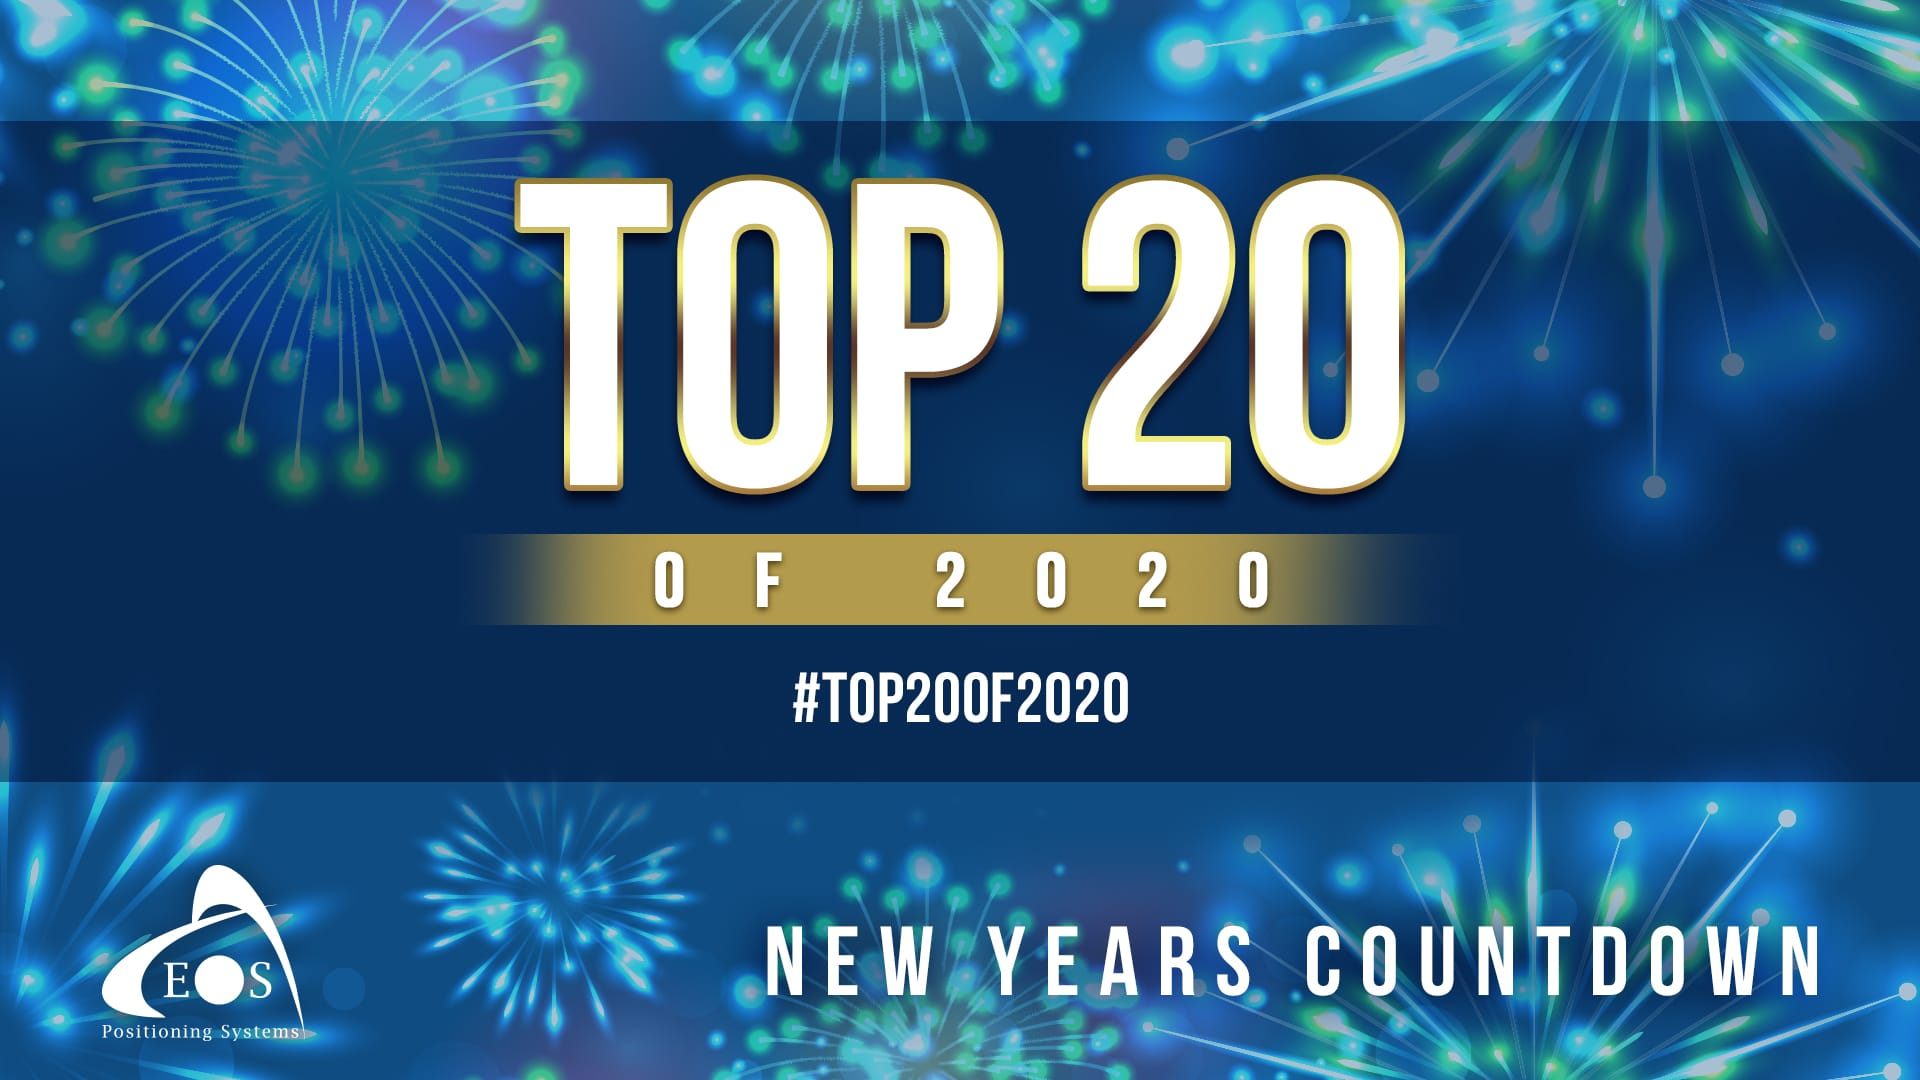 Feature image - Eos Positioning Systems Top 20 Posts of 2020 Countdown